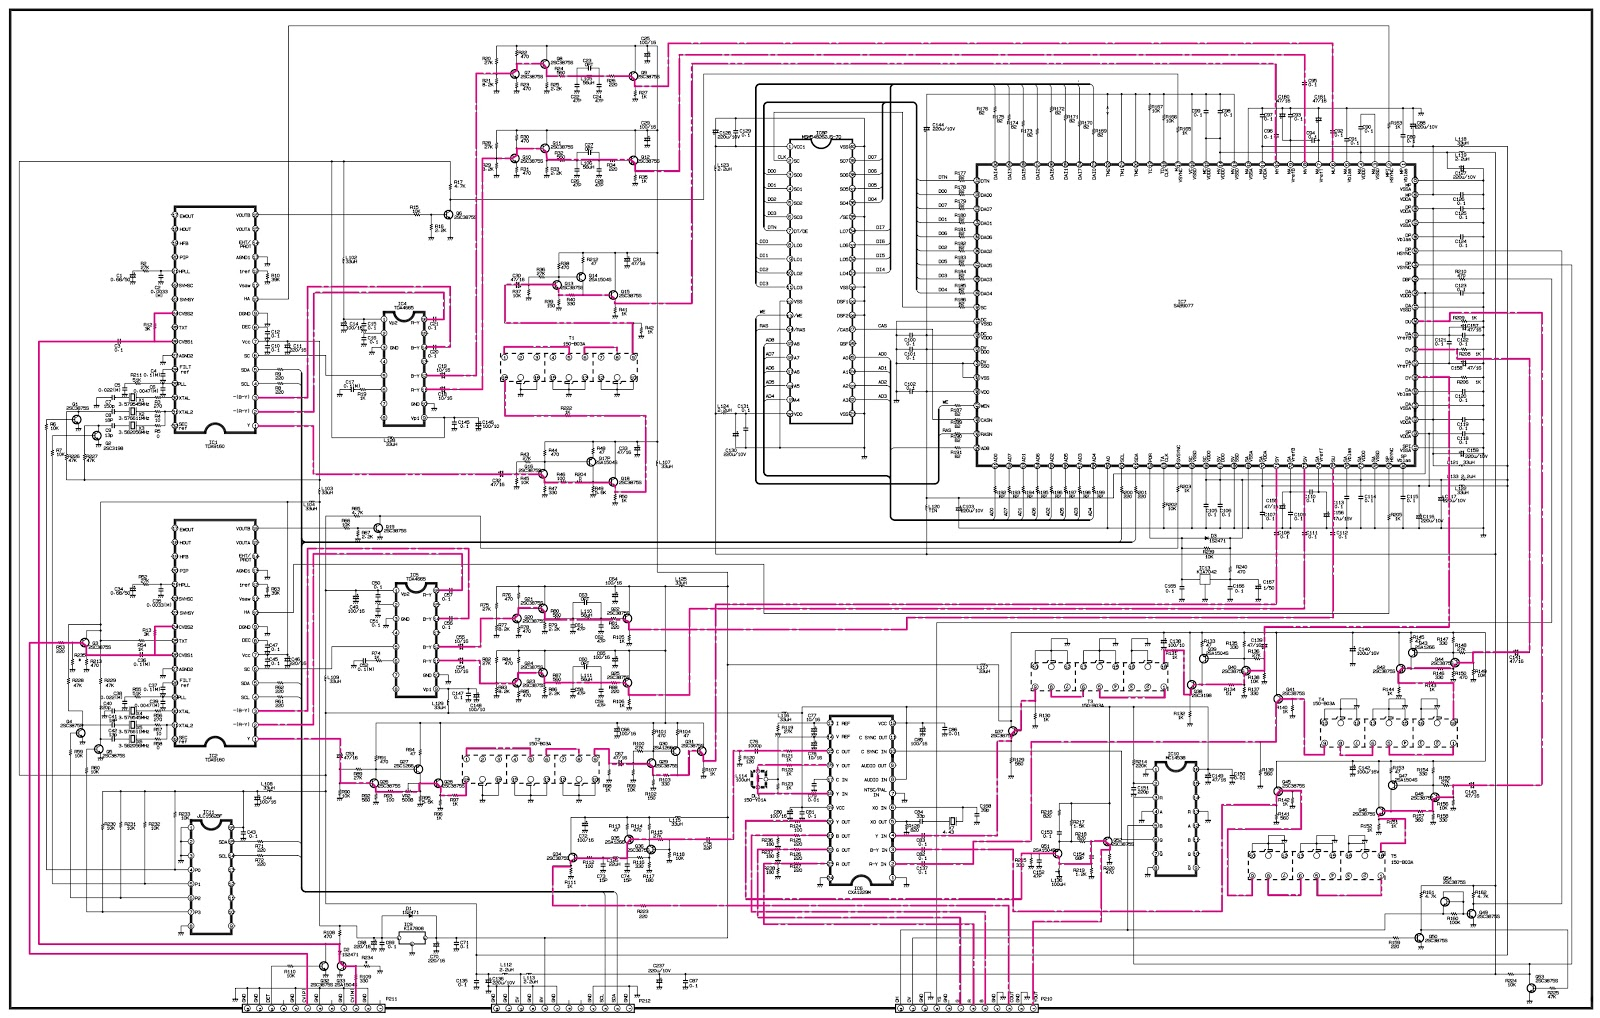 WP32A30 – LG 32 inch CRT TV – Circuit Diagram | Schematic